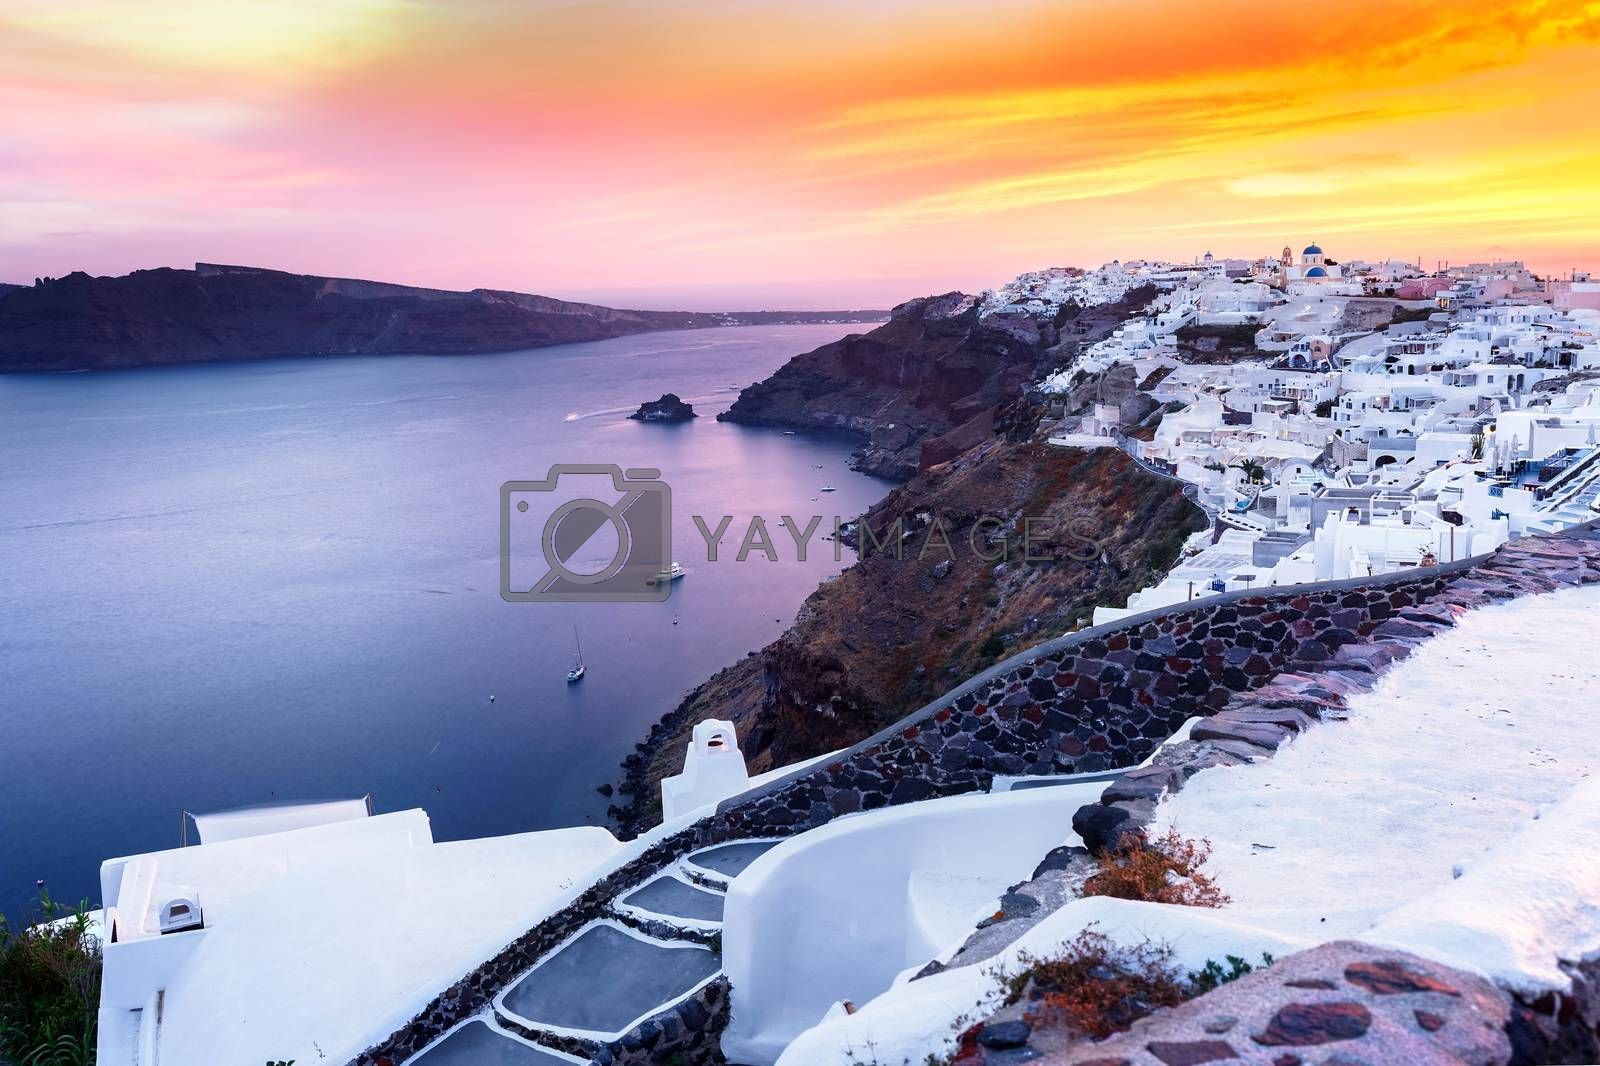 World famous Oia village at sunset, Santorini.  Caldera and traditional, famous white washed buildings and churches with blue domes over the caldera,Santorini island, Greece.